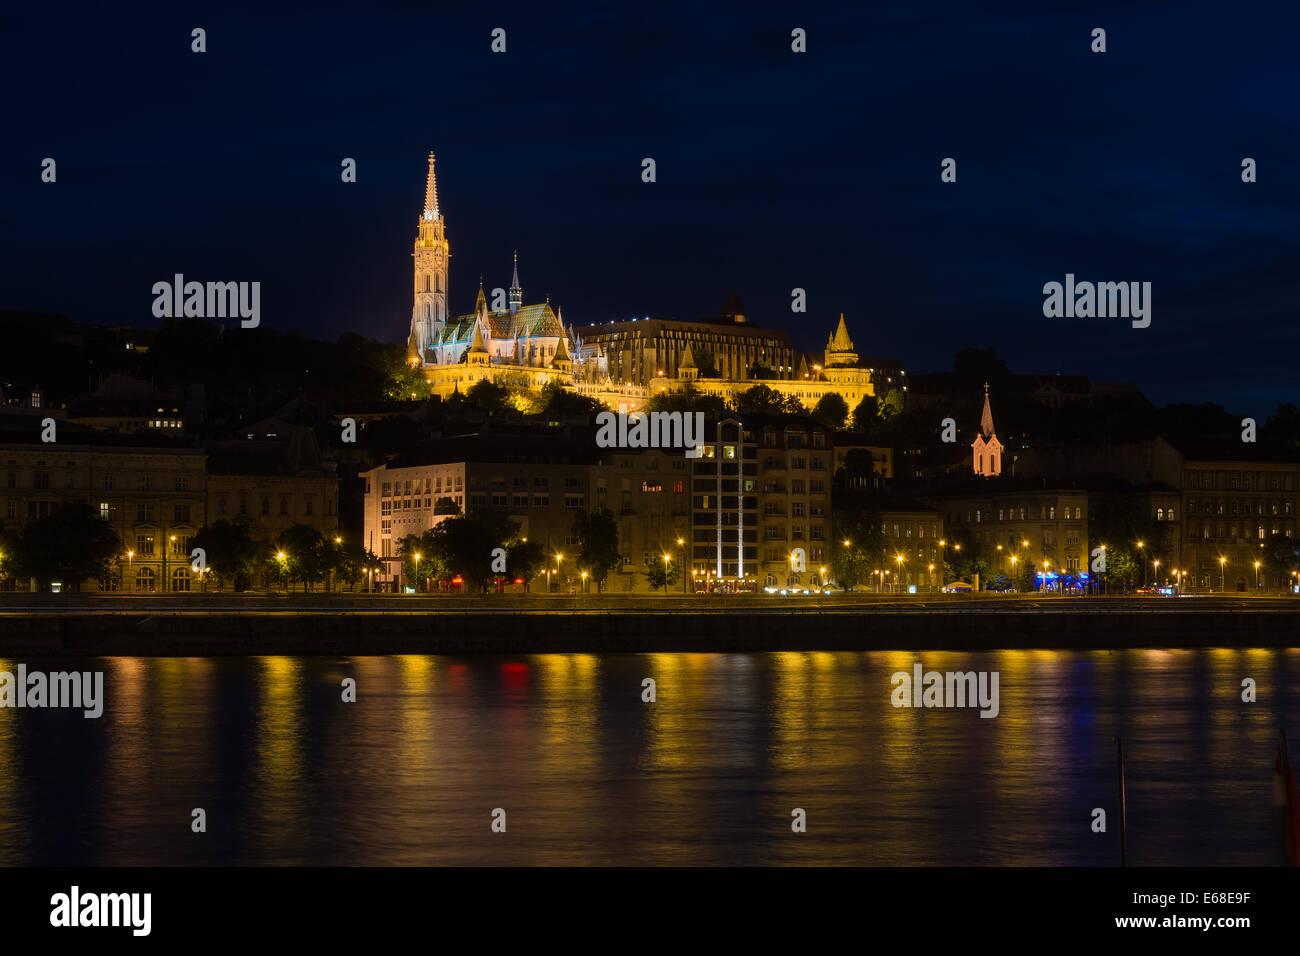 View of Fisherman's Bastion over the Danube Budapest with Matthias Church - Stock Image